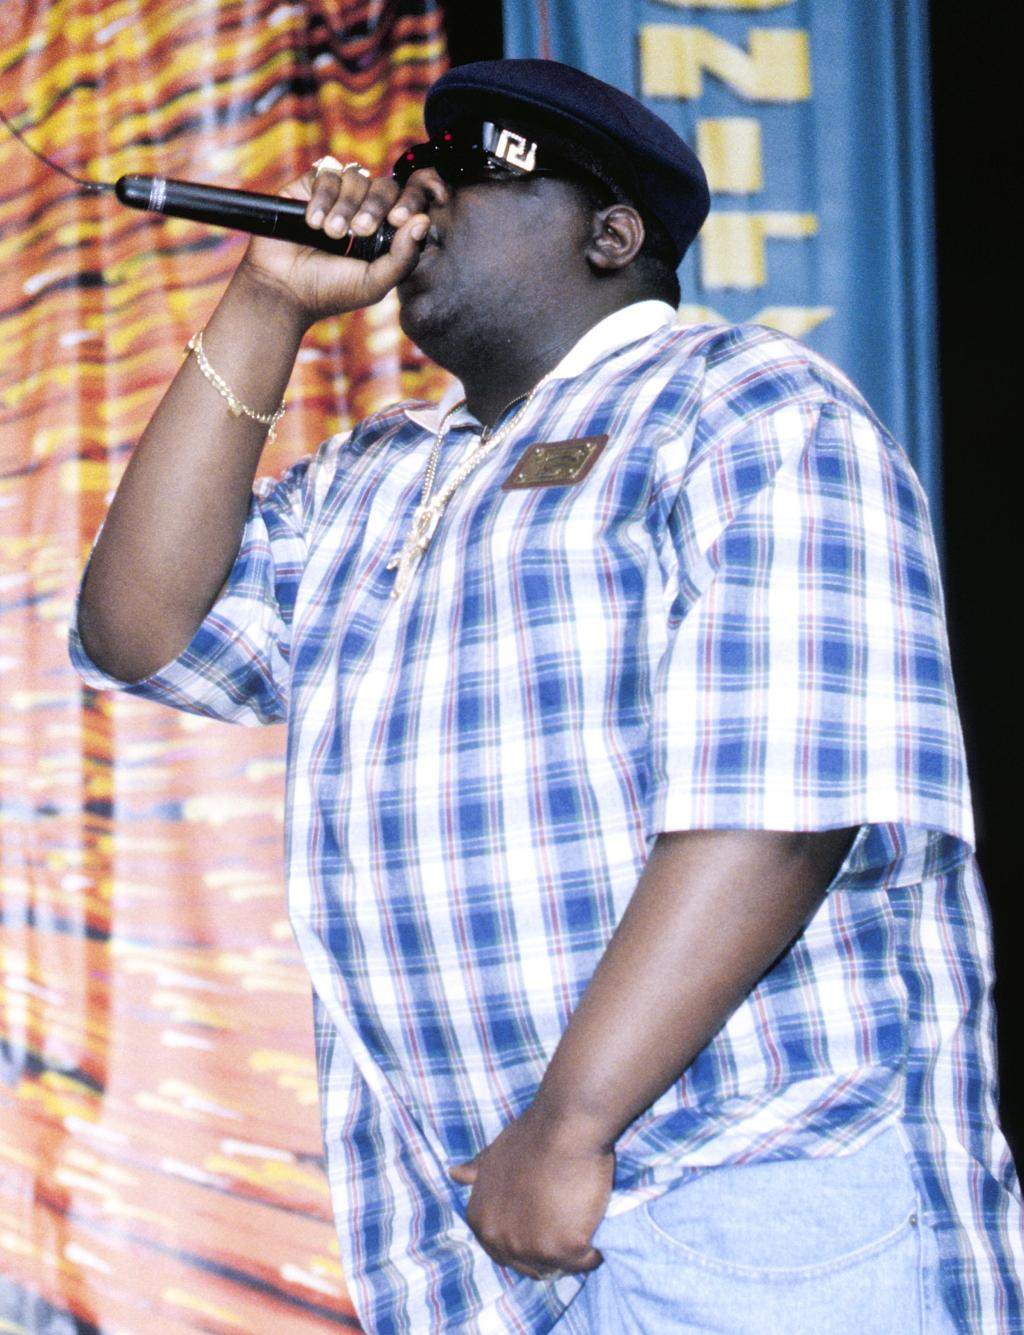 KMEL Summer Jam 1995 - Notorious B.I.G.